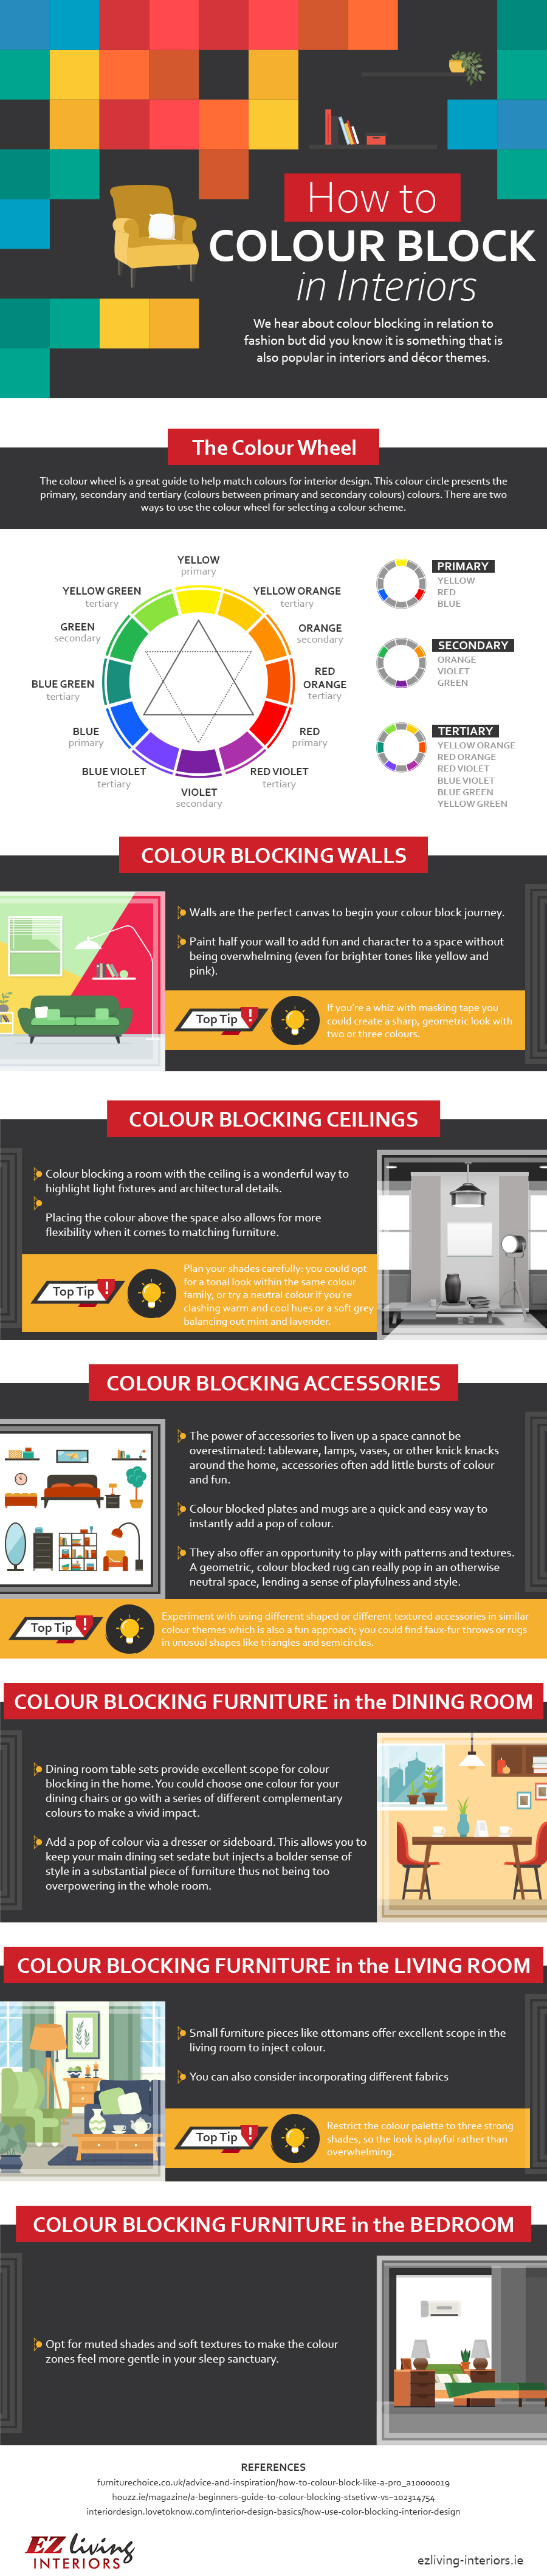 How to Color Block in Interiors and Furniture - Infographic